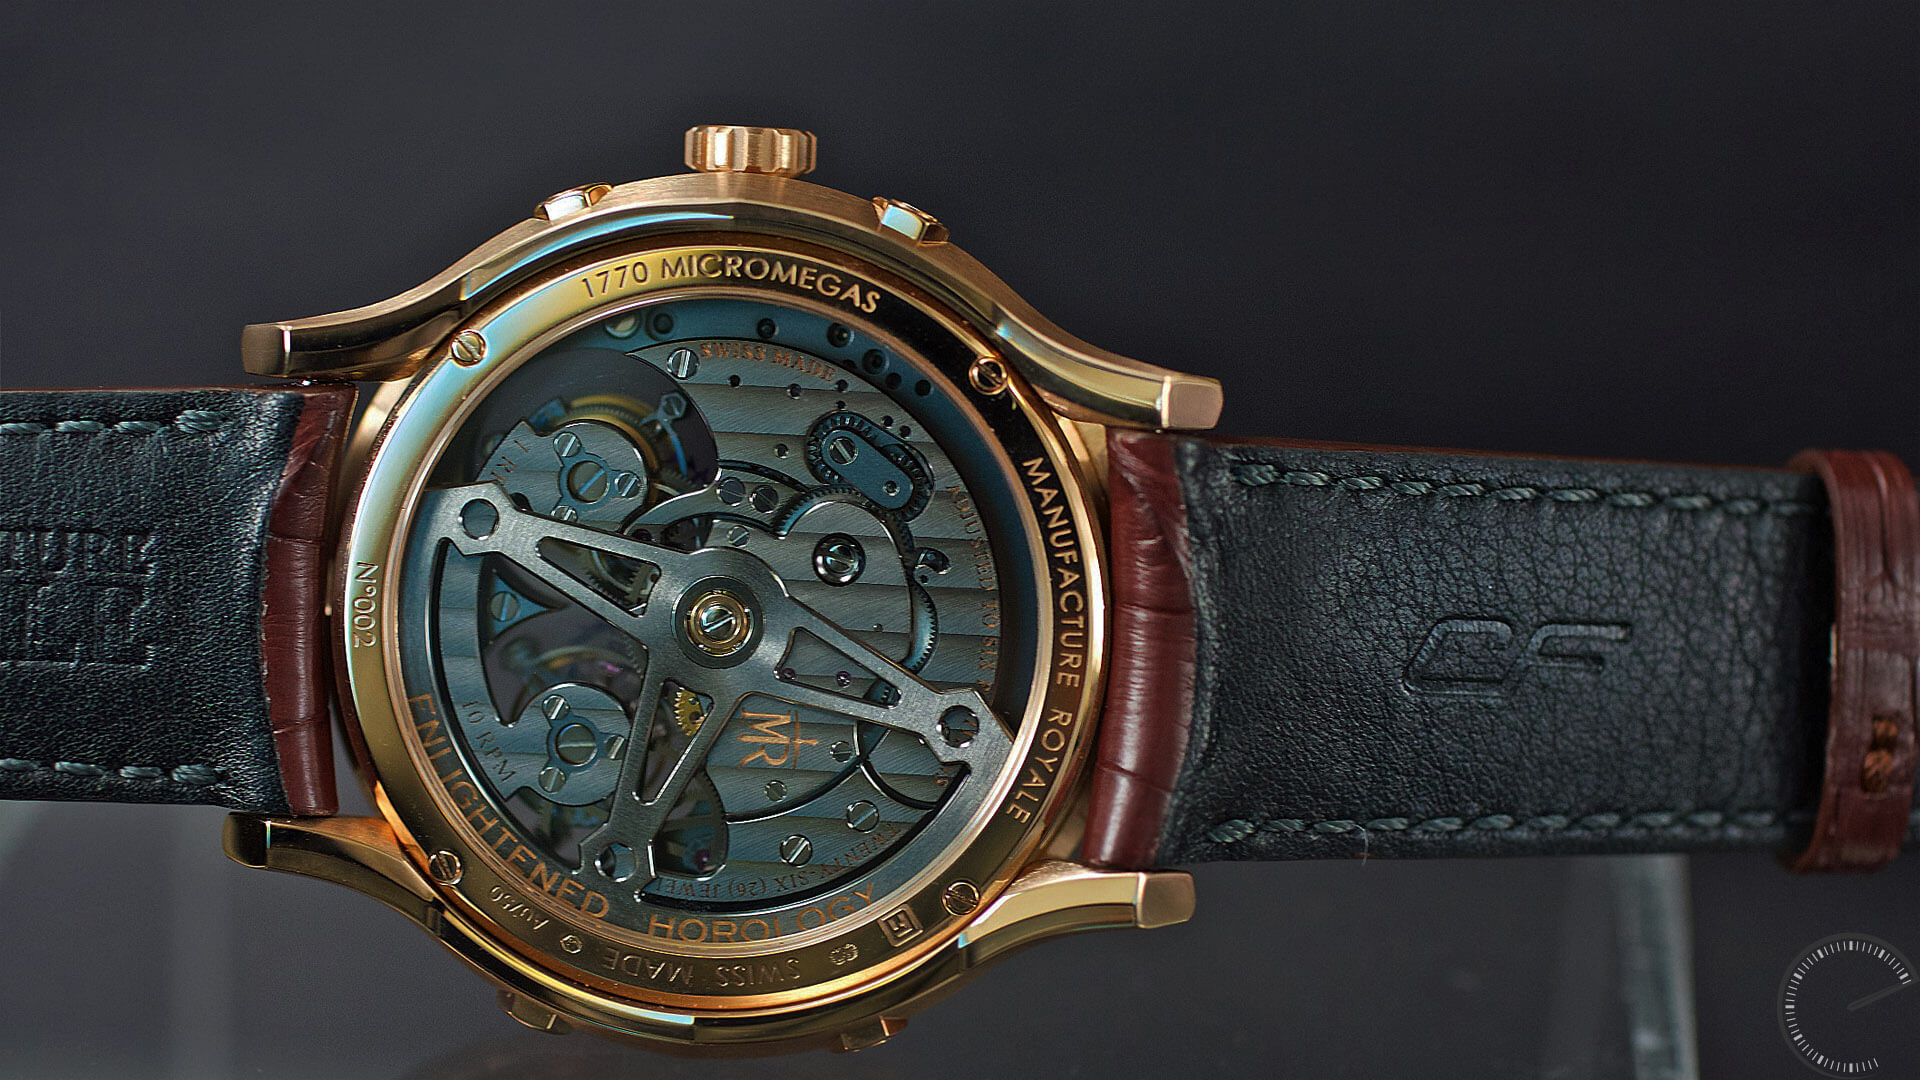 Manufacture Royale 1770 Micromegas_movement - ESCAPEMENT magazine - horological news by Angus Davies